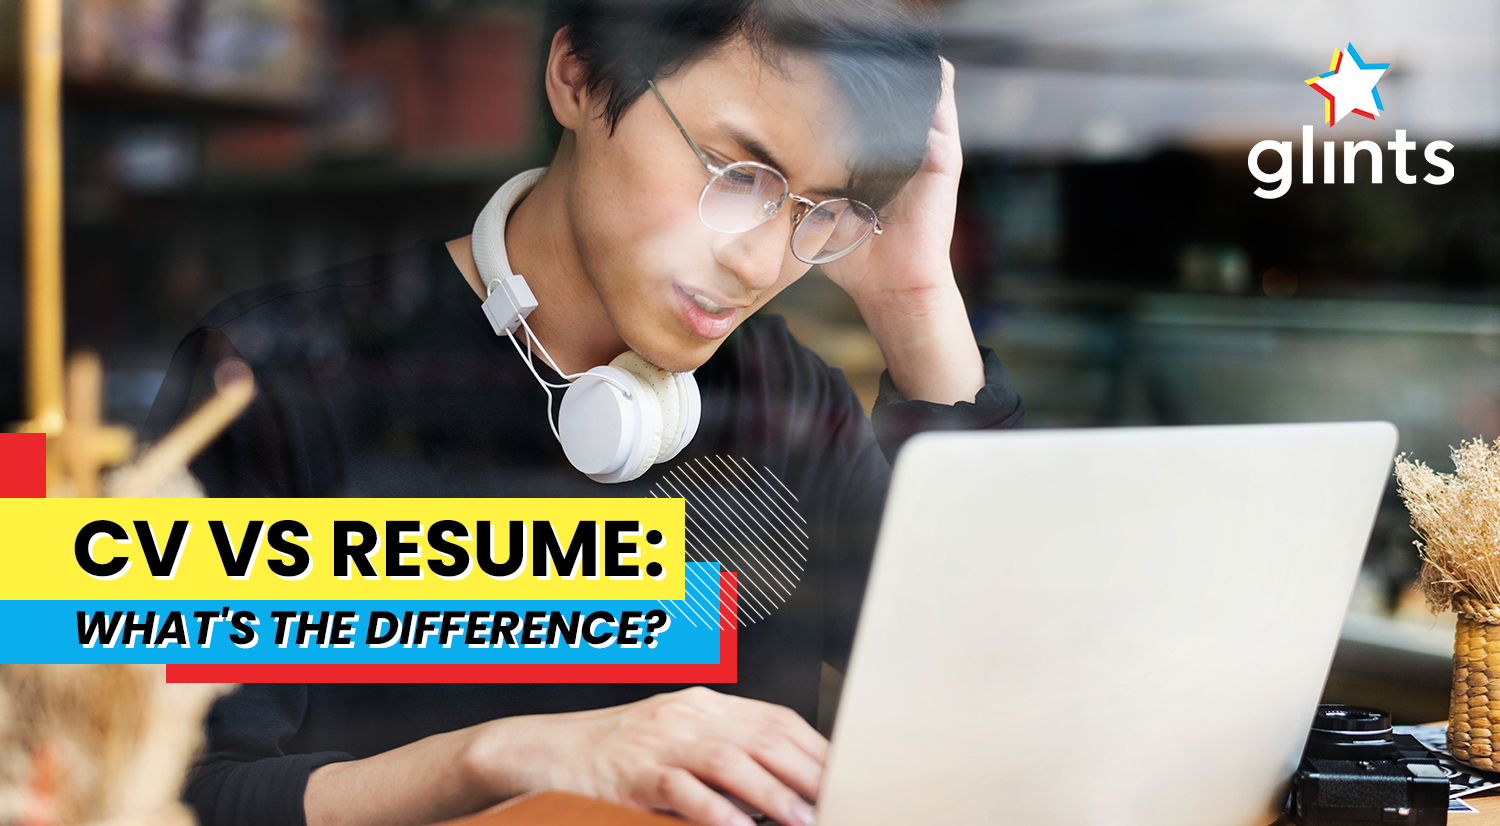 Cv Vs Resume The Differences | Cv Vs Resume What S The Difference Glints